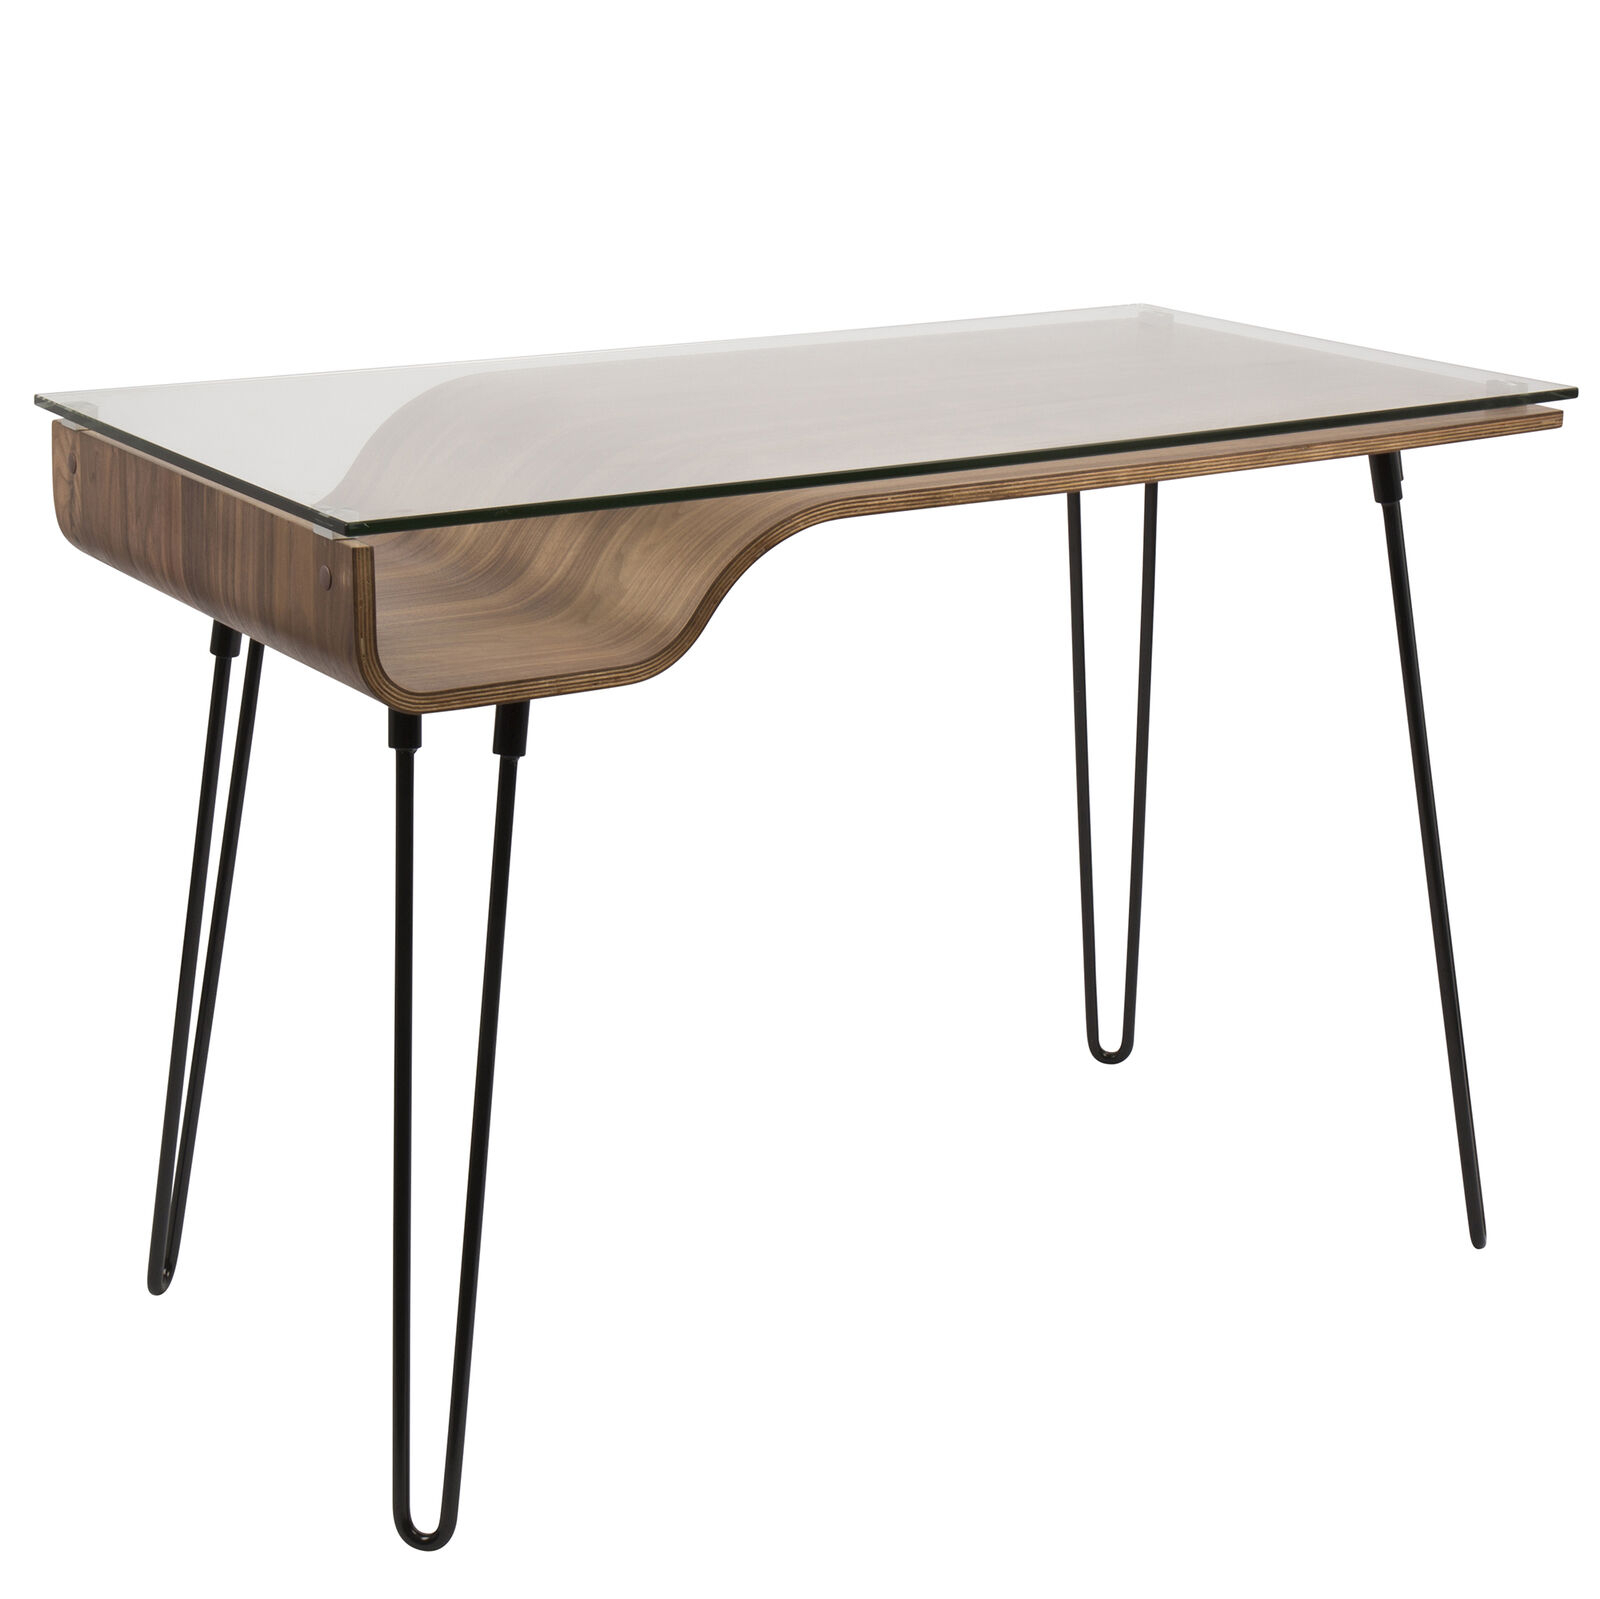 Lumisource Avery Desk Walnut Top / Black Frame In Most Up To Date Avery Rectangular Dining Tables (View 22 of 25)